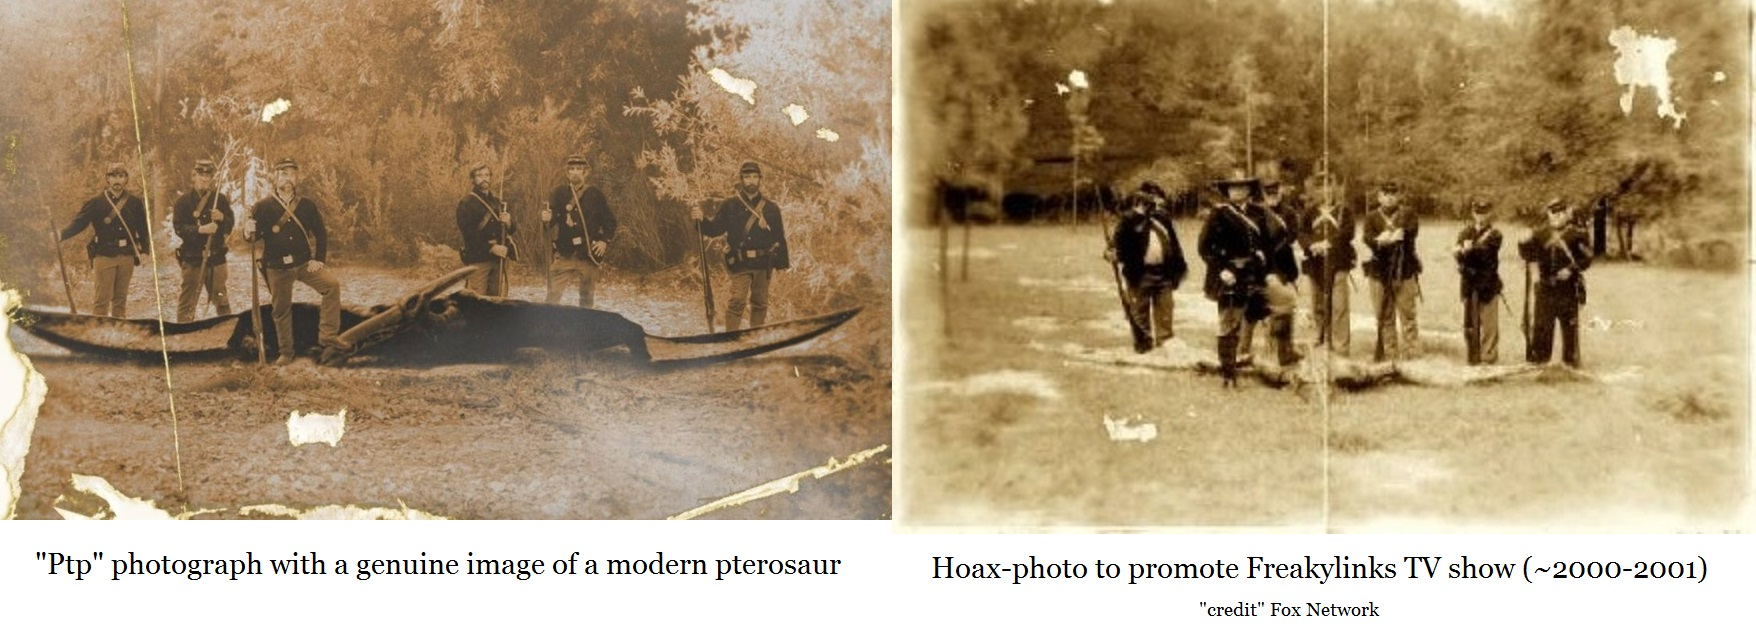 genuine image of a modern pterosaur in on the left; hoax-photo is on the right